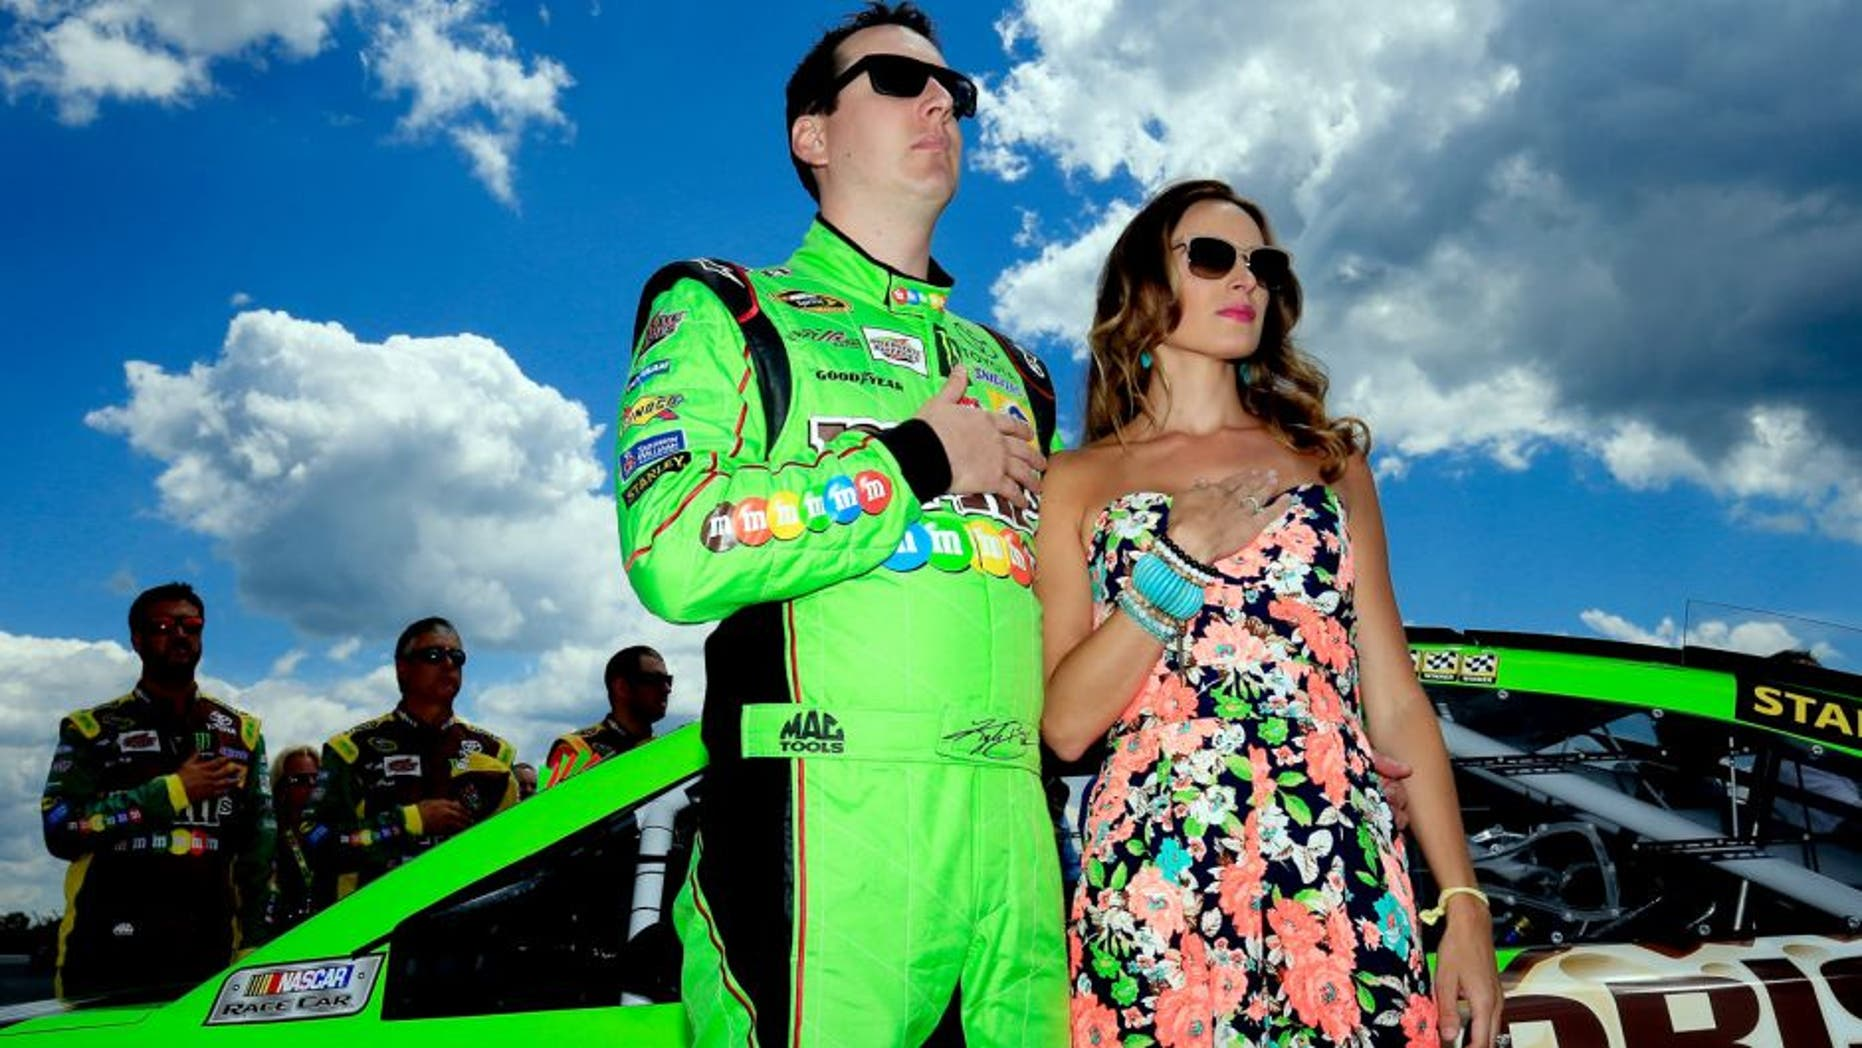 LONG POND, PA - AUGUST 02: Kyle Busch, driver of the #18 M&M's Crispy Toyota, stands with his wife Samantha prior to the NASCAR Sprint Cup Series Windows 10 400 at Pocono Raceway on August 2, 2015 in Long Pond, Pennsylvania. (Photo by Chris Trotman/Getty Images)